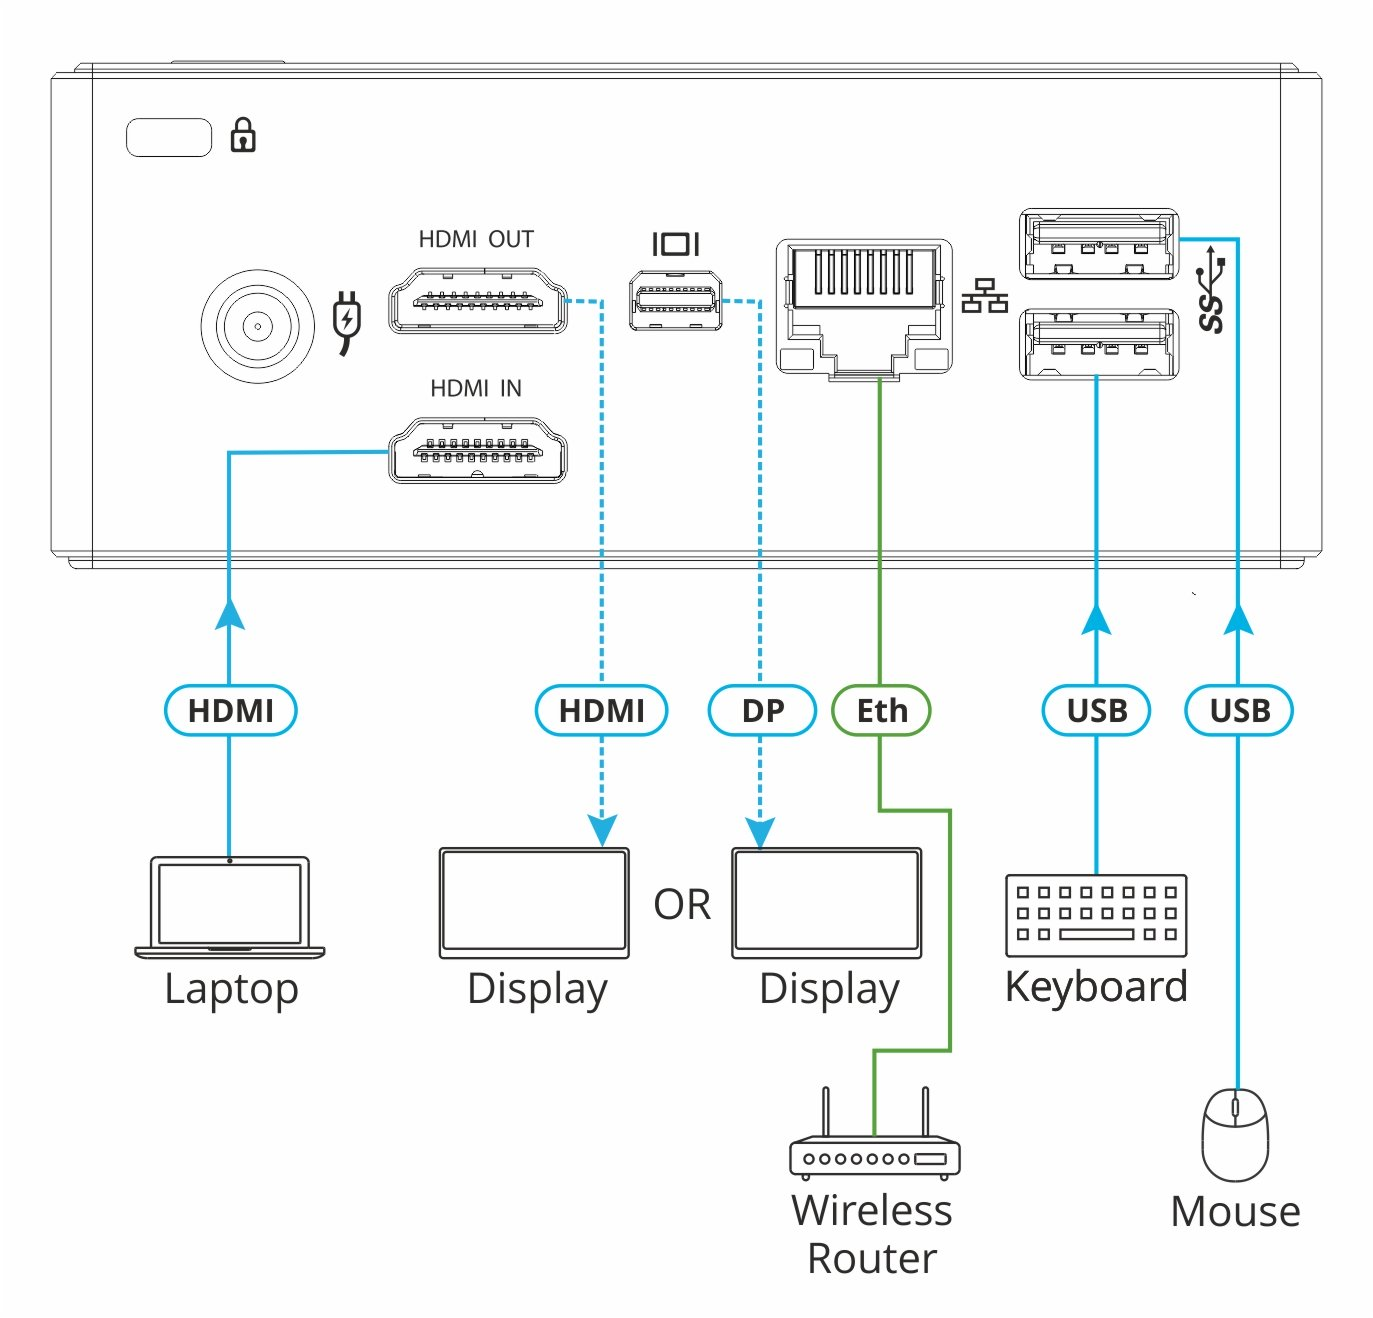 kramer-via-connect-plus-connection-diagram.jpg